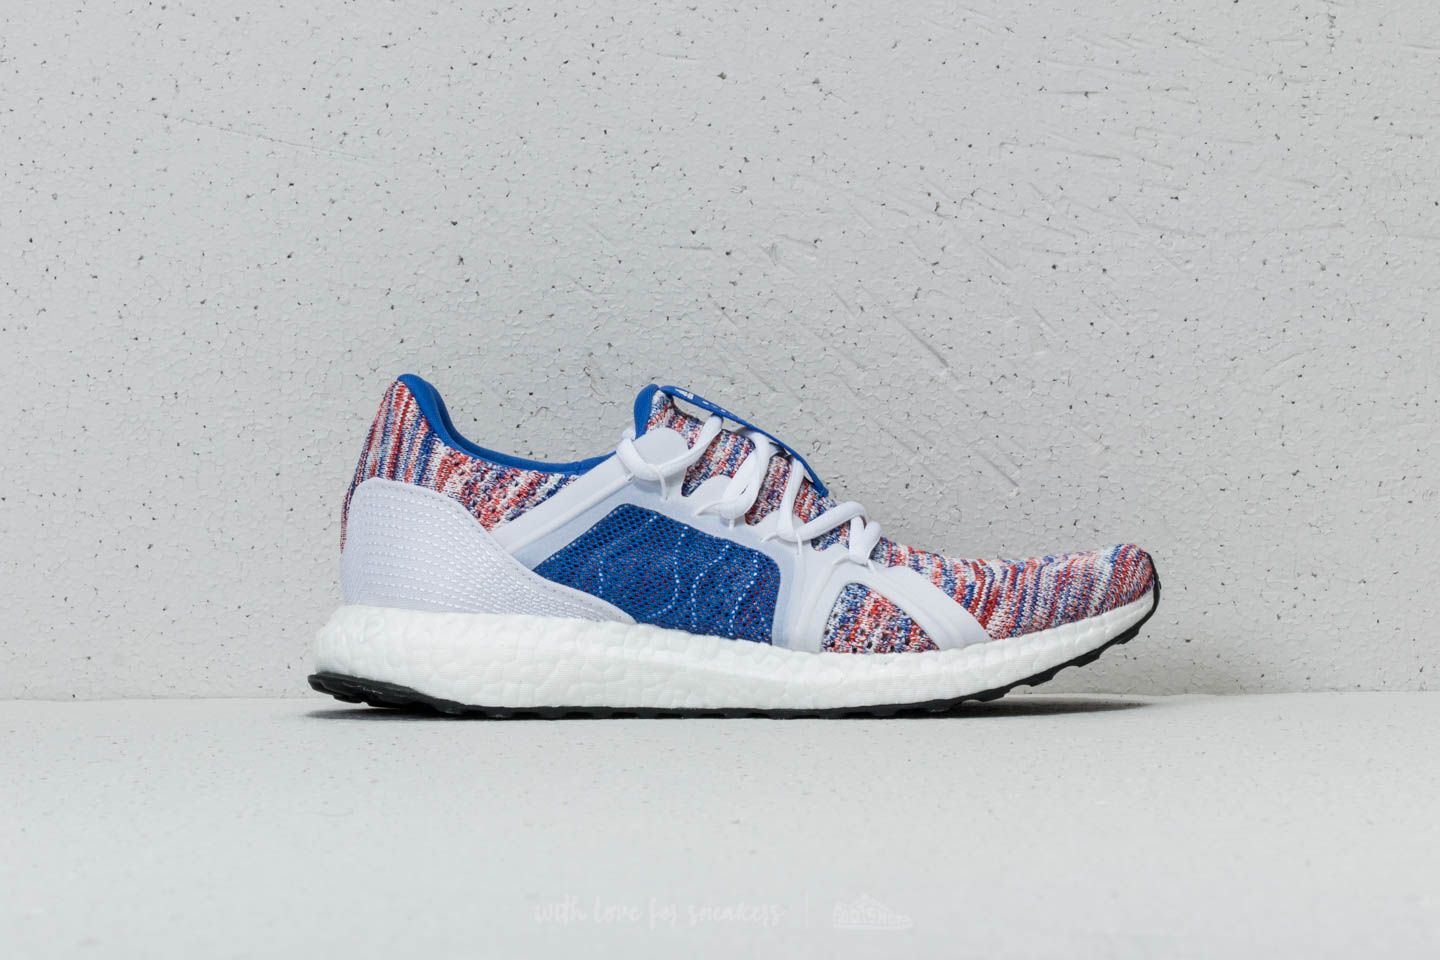 wholesale dealer 888bc 36b92 adidas x Stella McCartney Ultraboost Parley Hi-Res Blue  Core White  Dark  Callisto